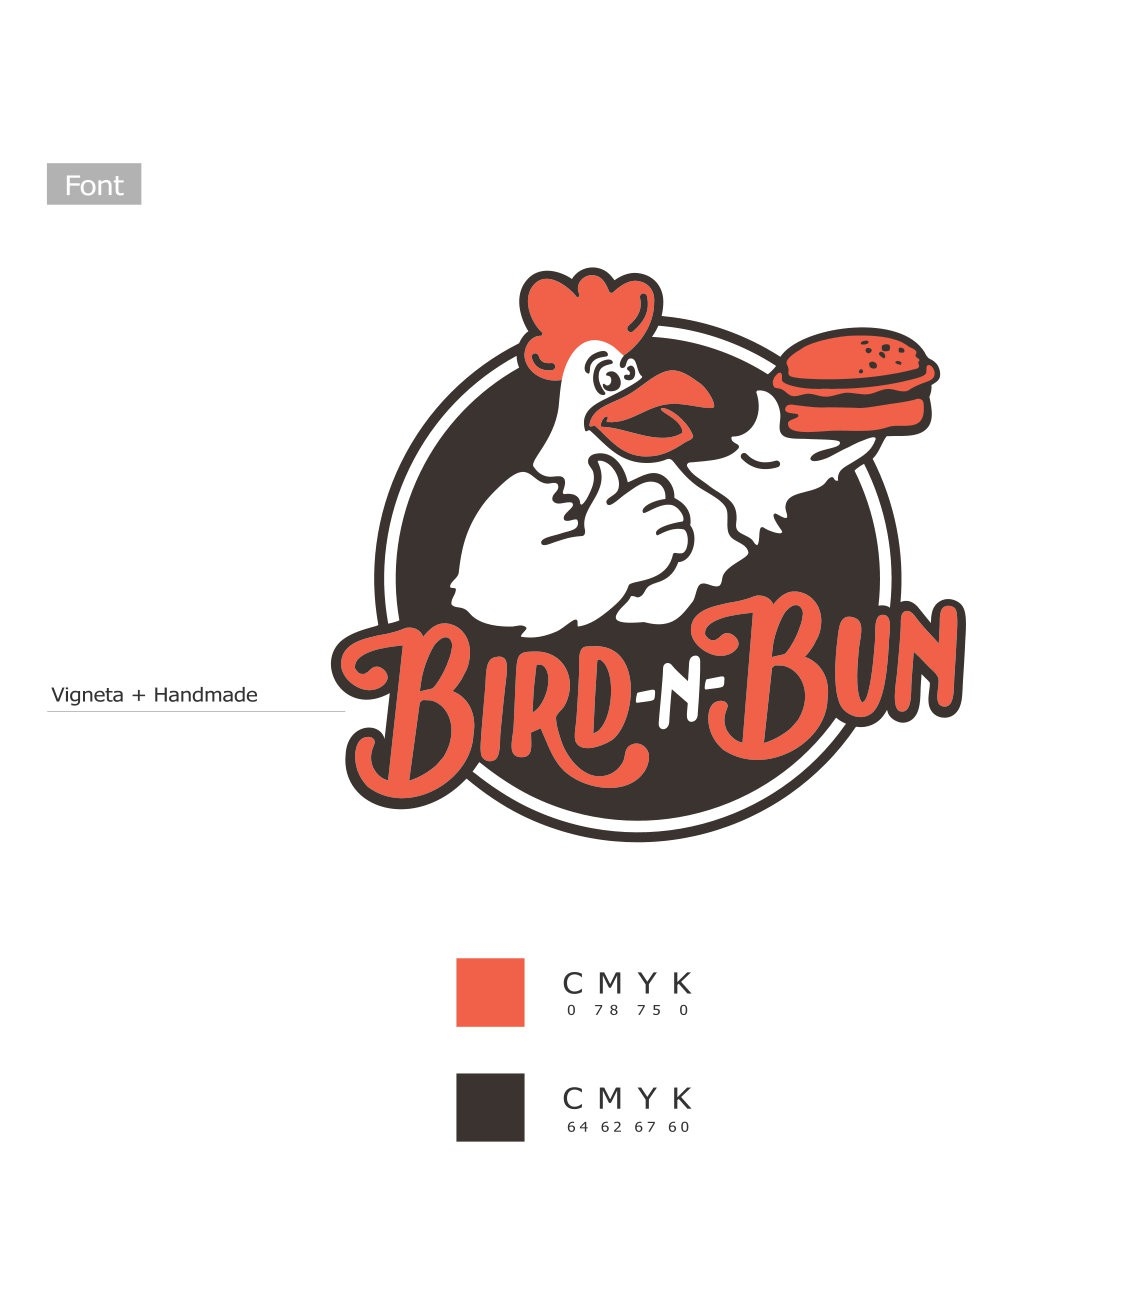 New logo to make fast food cool again! Launching a virtual/cloud kitchen brand.